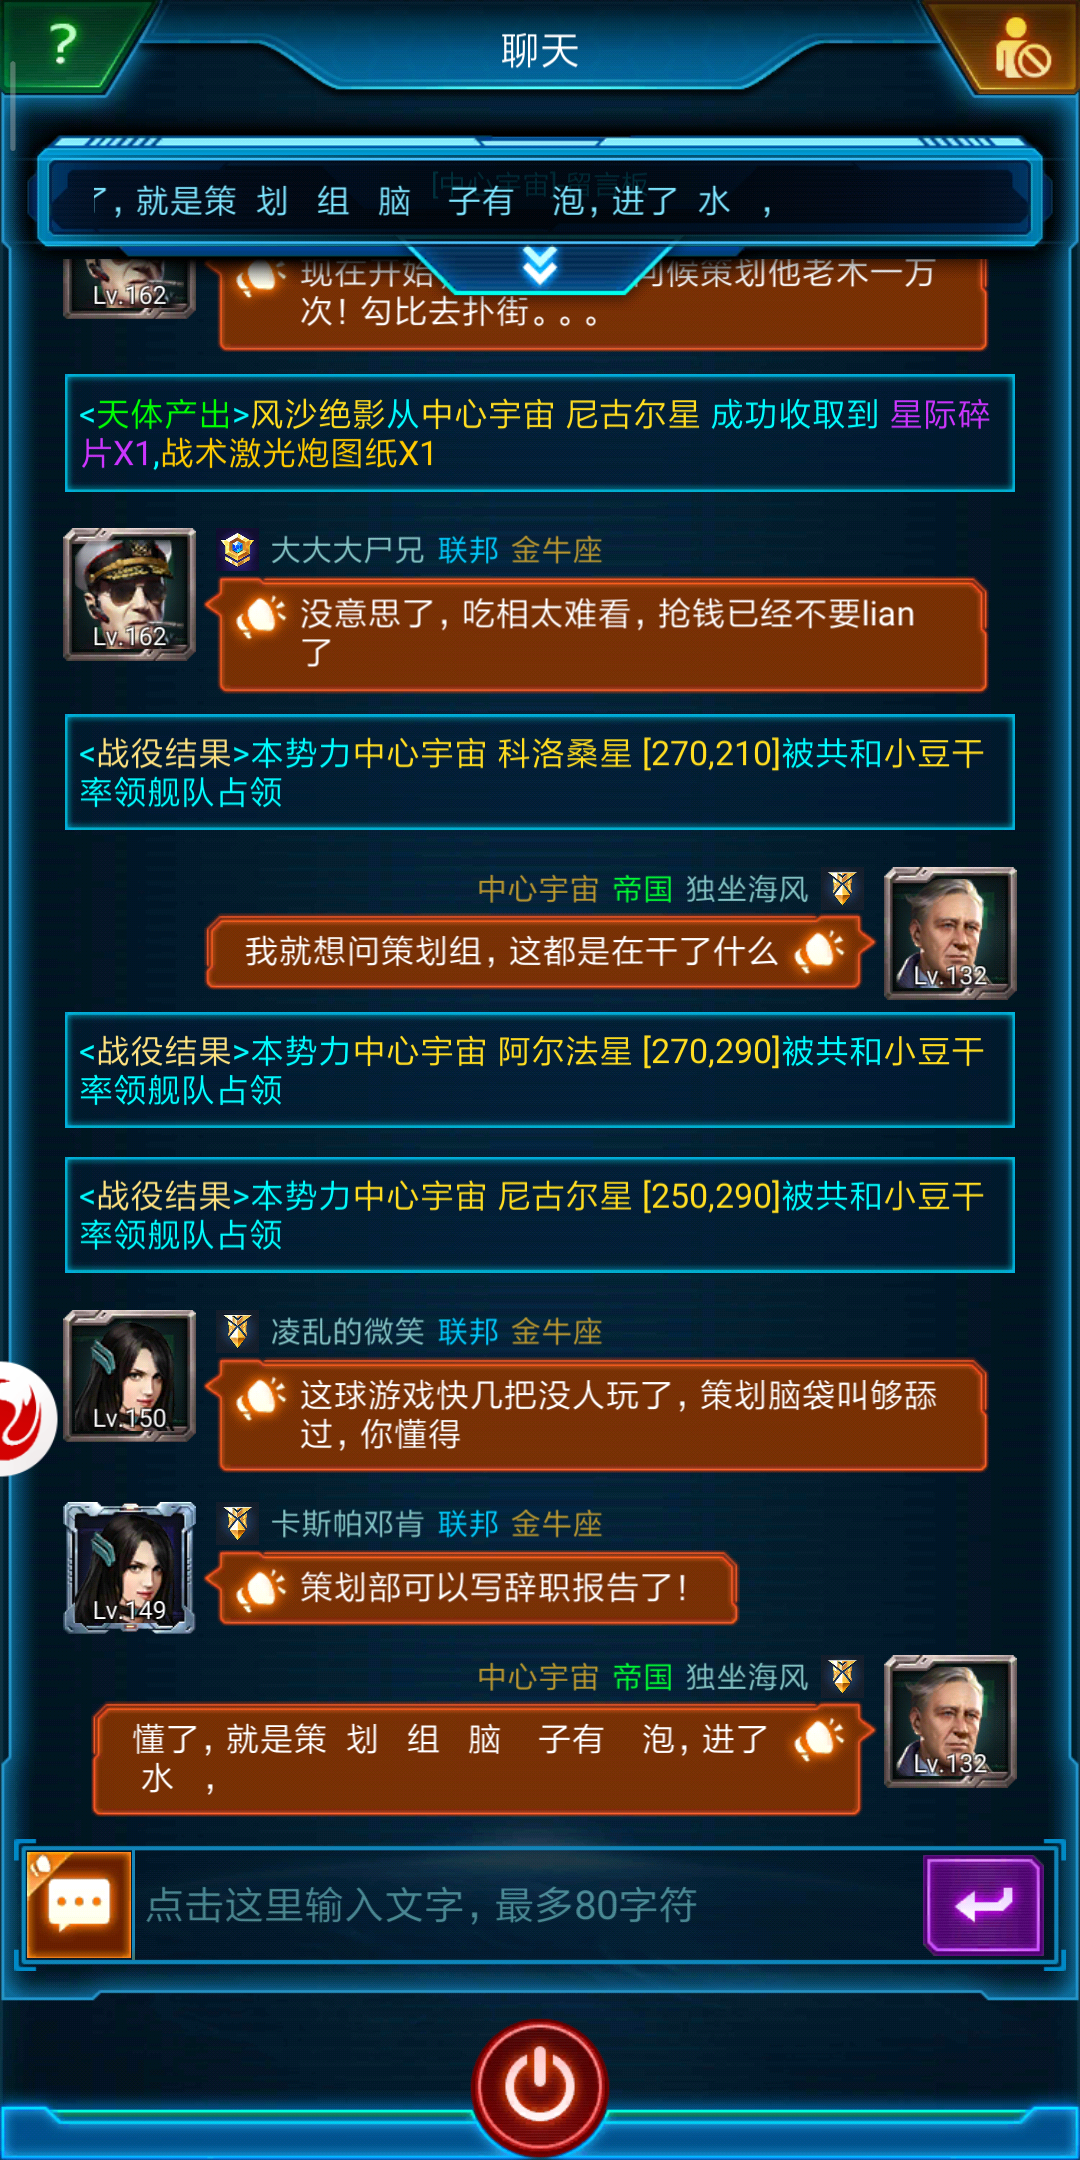 Screenshot_2019-08-01-11-11-12-381_com.jedigames.p16s.luobo.png